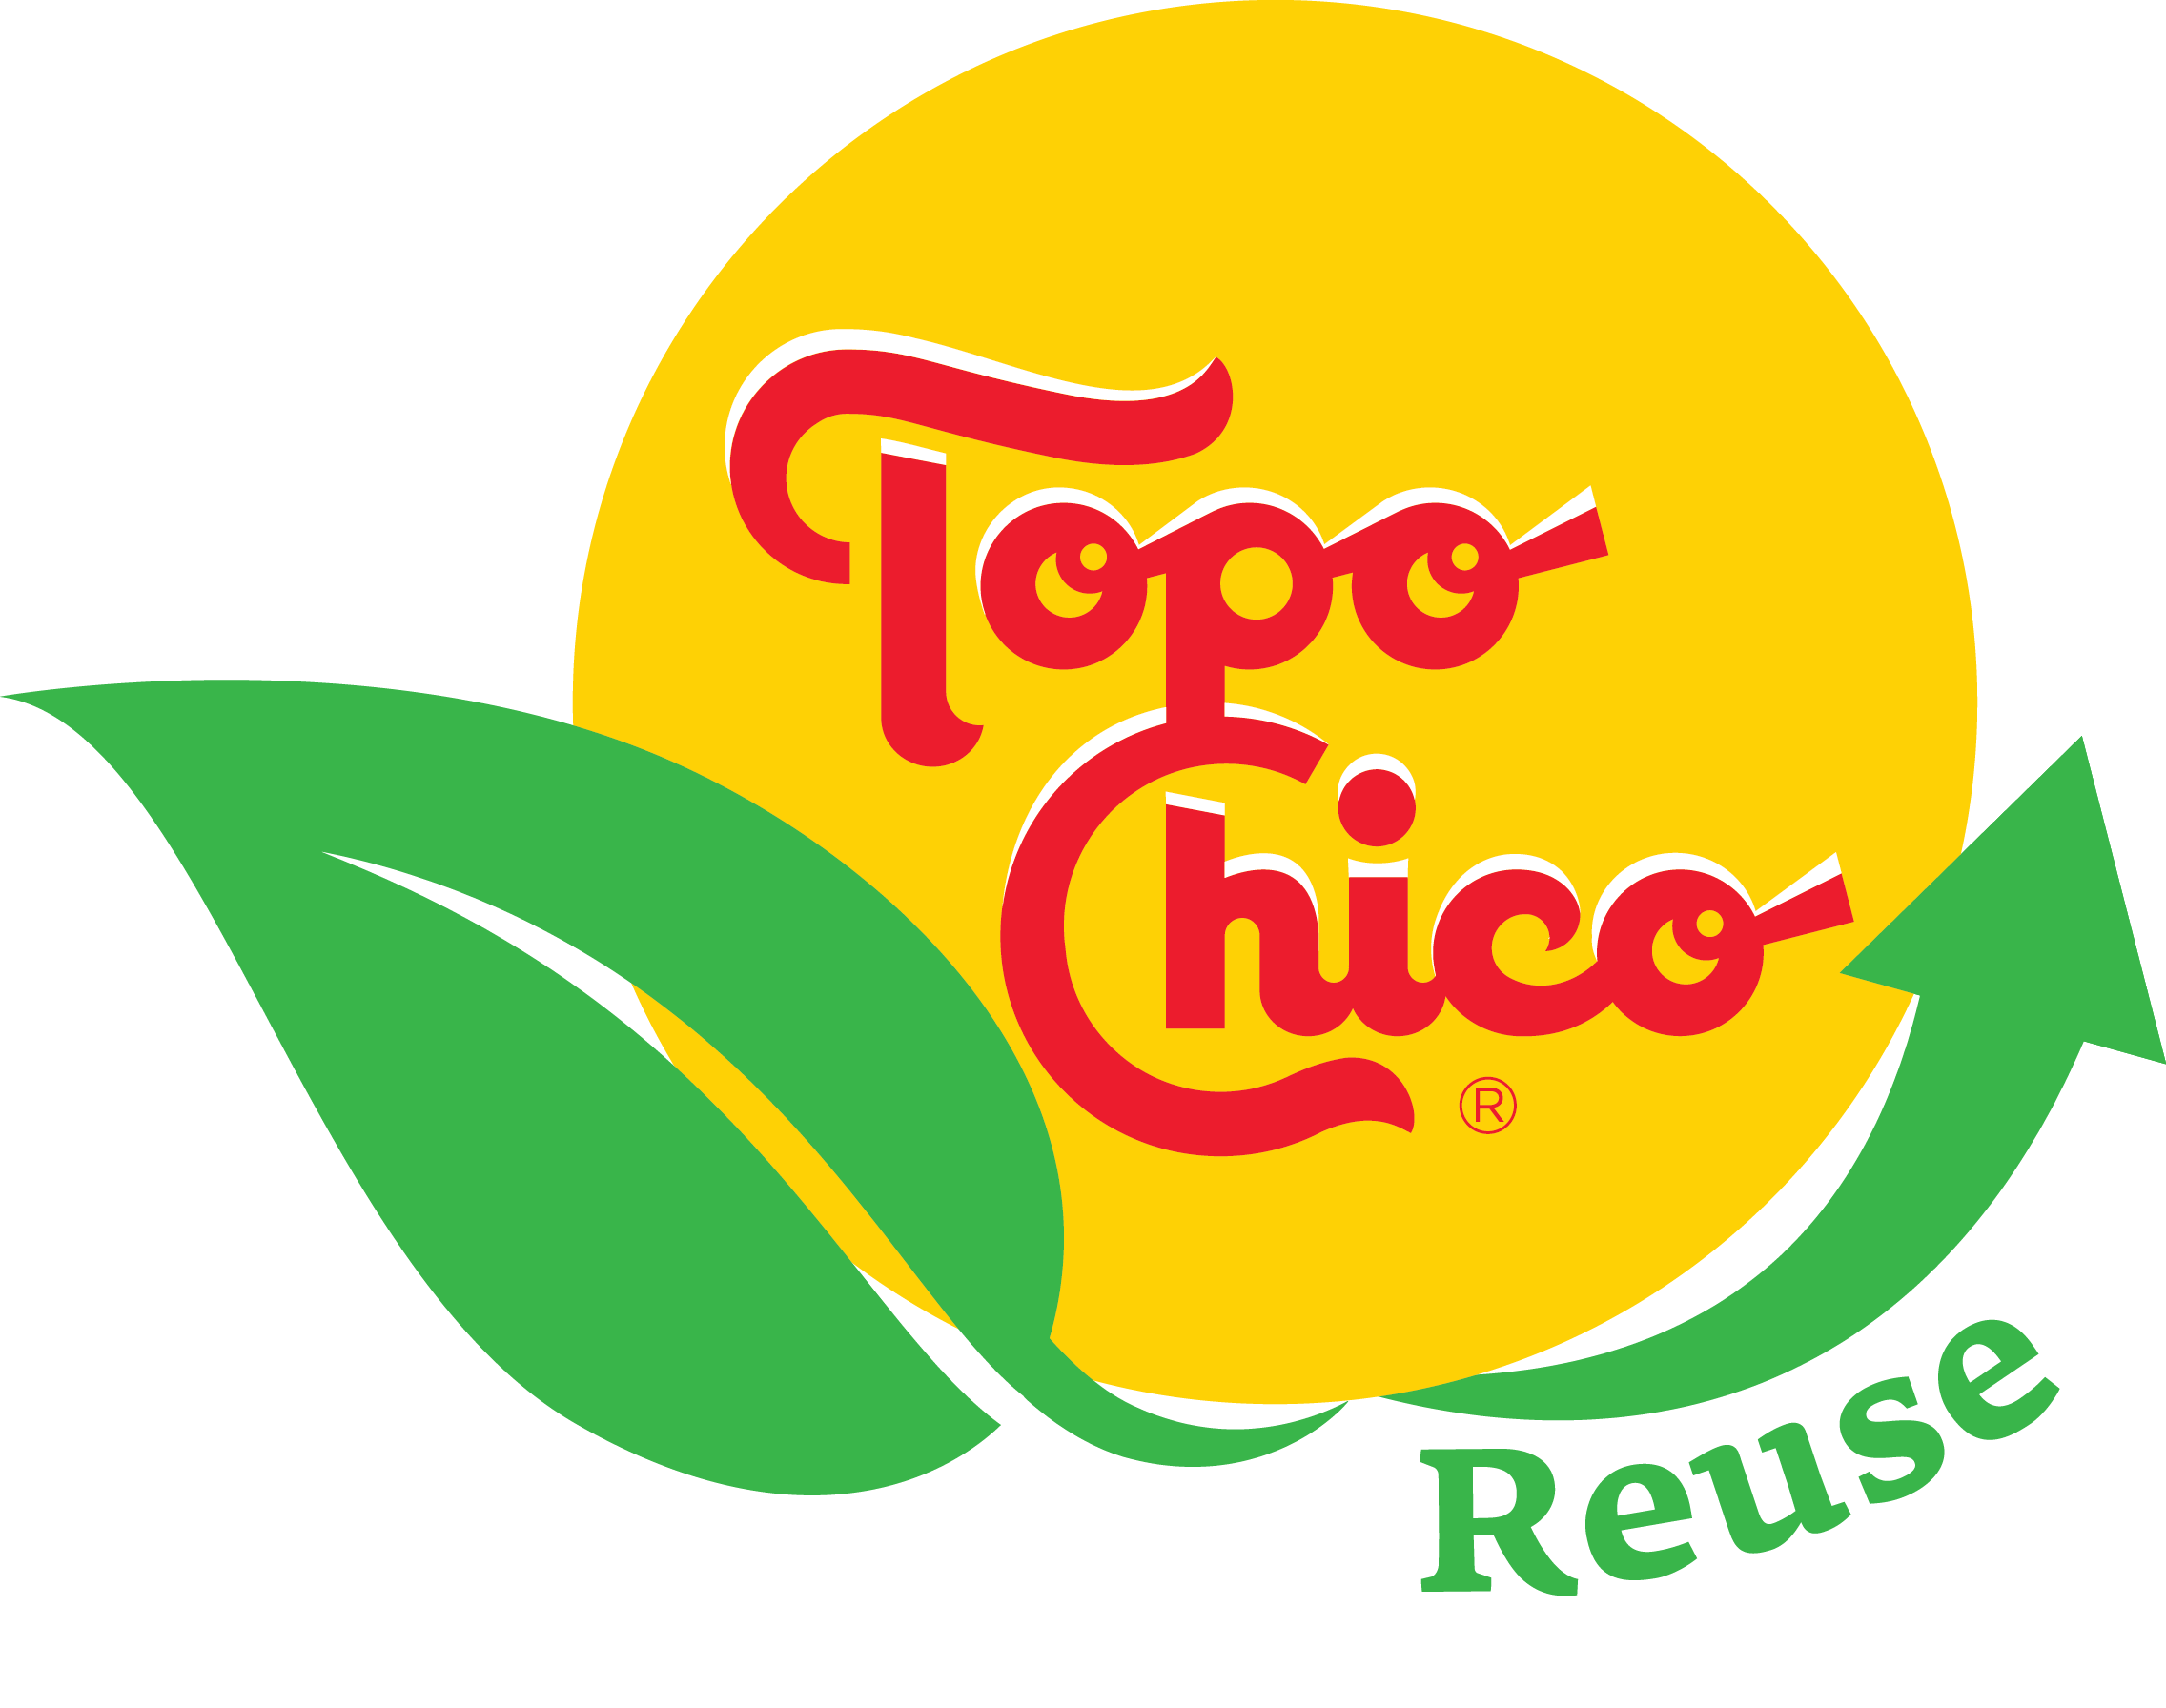 Topo Chico, I Love You the Very Most.